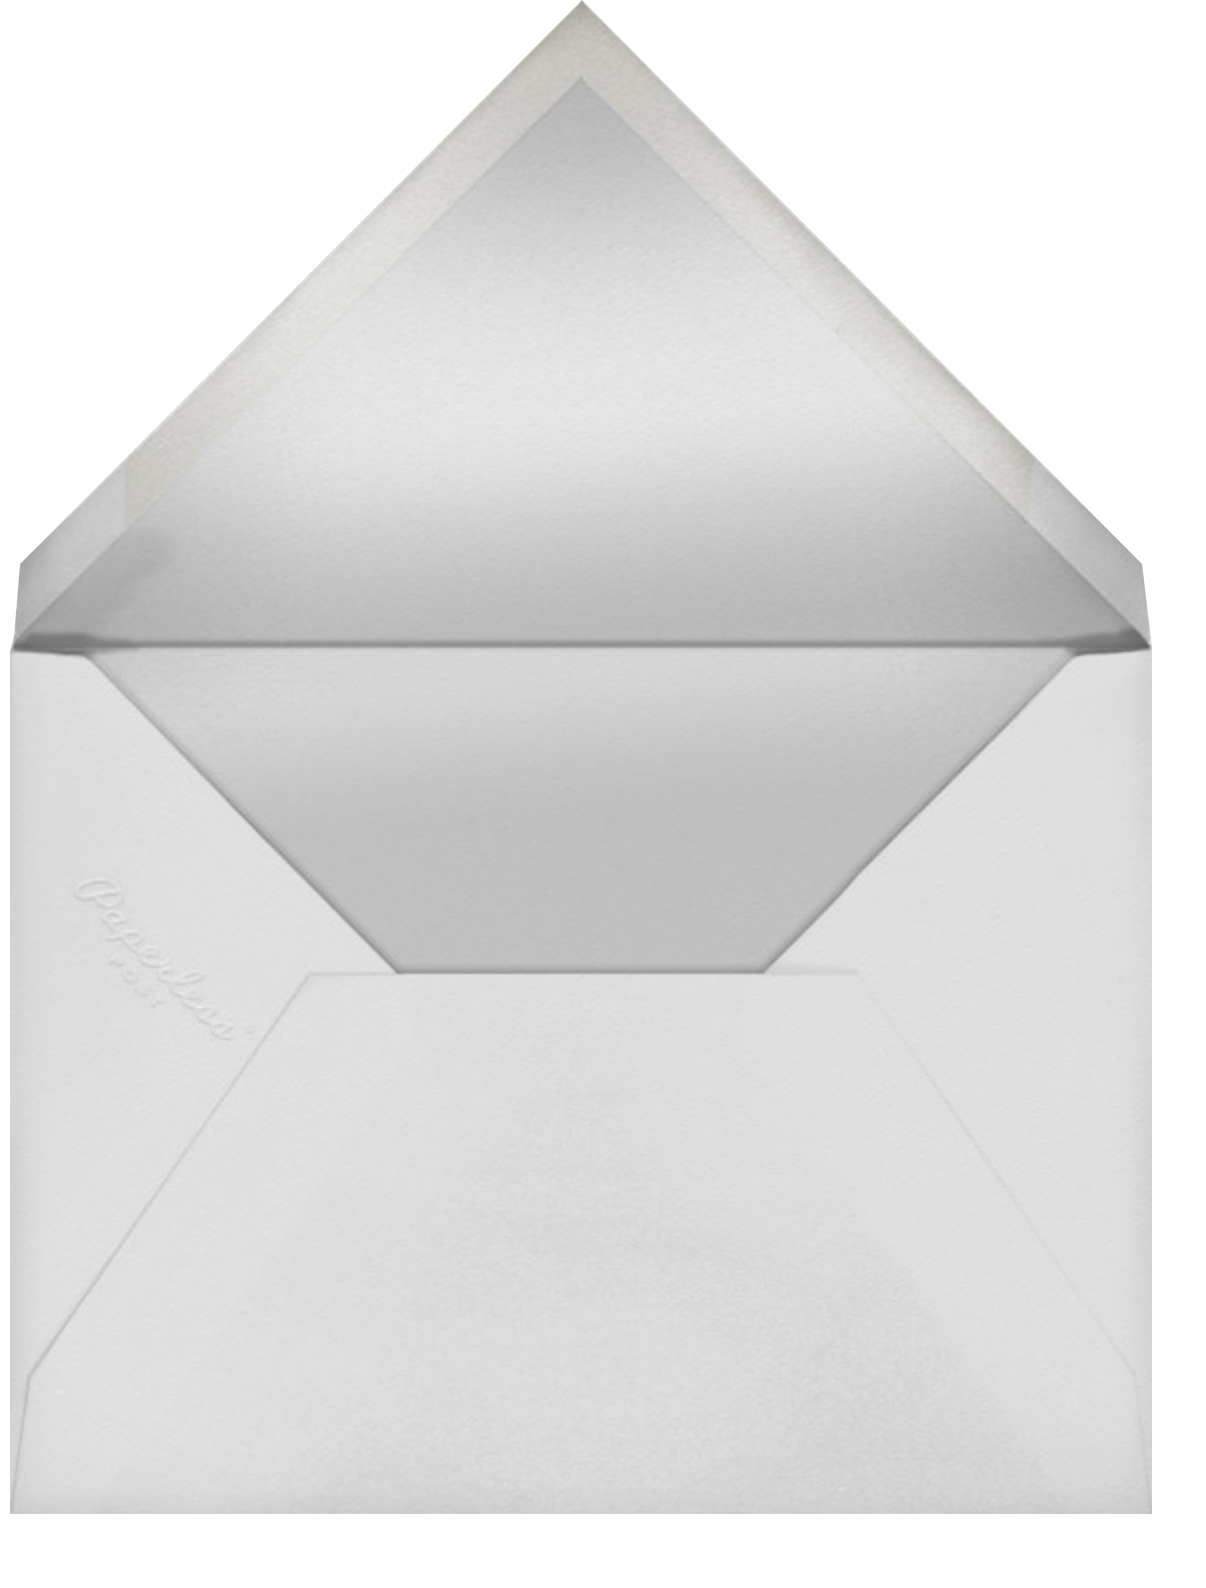 Tee Time - Paperless Post - Father's Day - envelope back